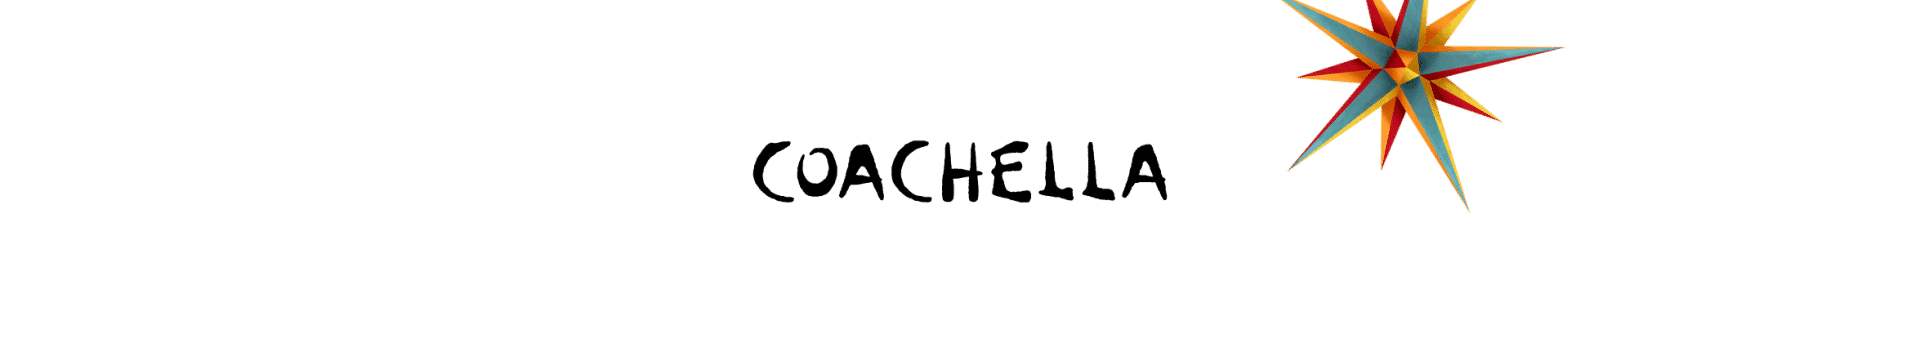 Coachella 2020 Shuttle Passes